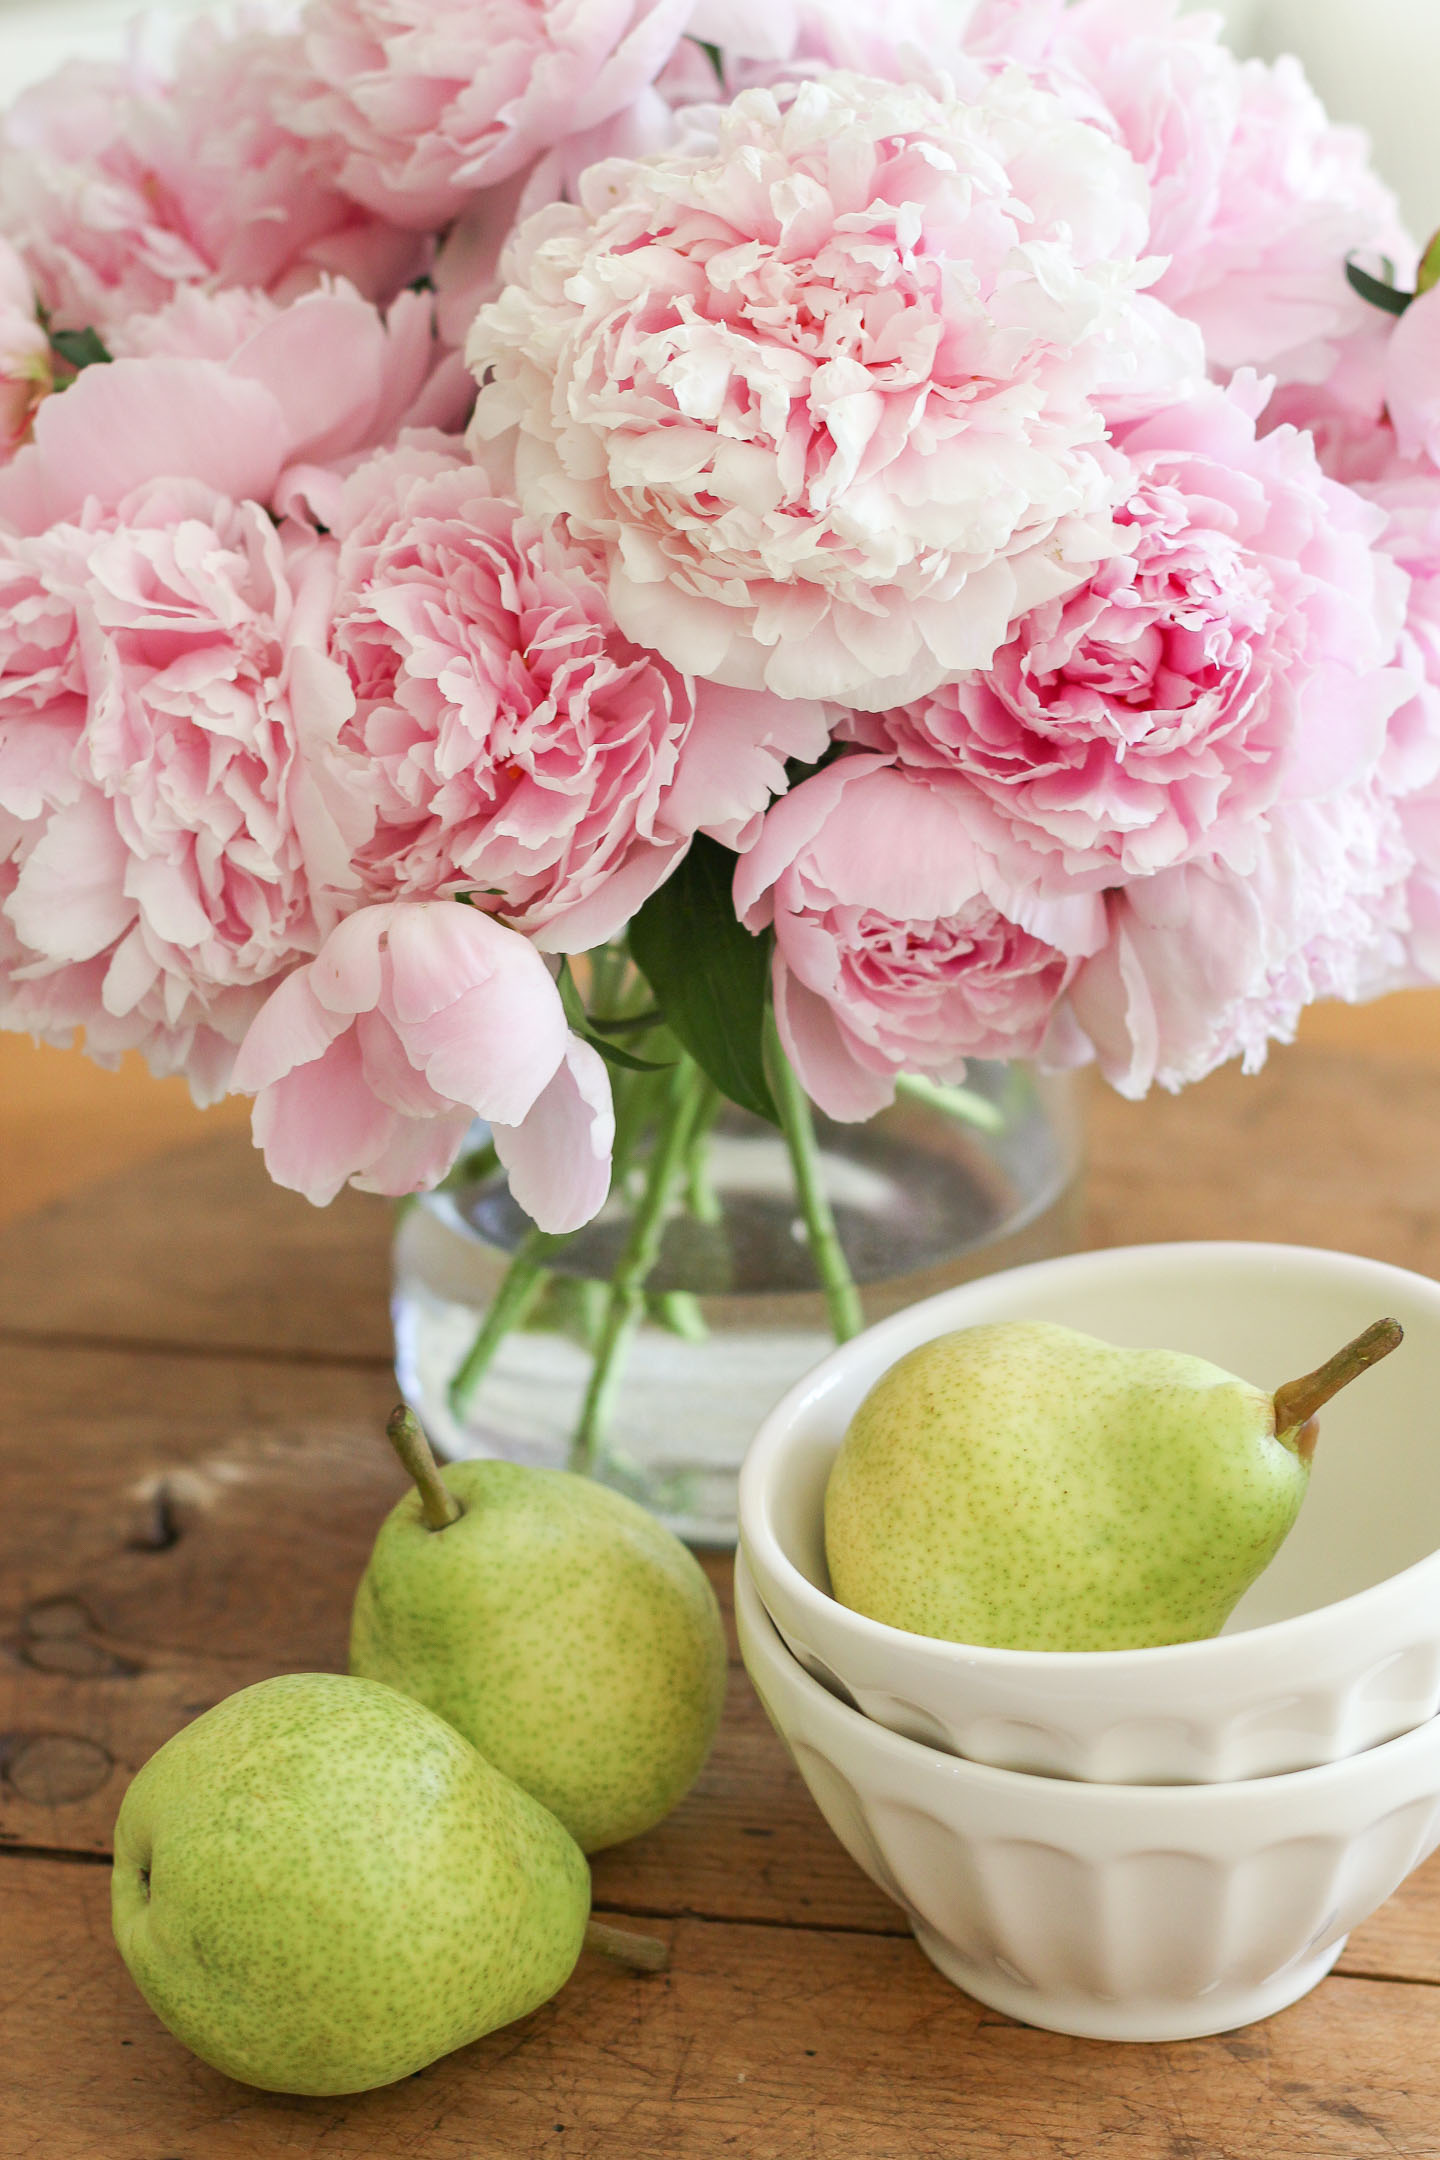 A bouquet of peonies and some pears in a bowl.